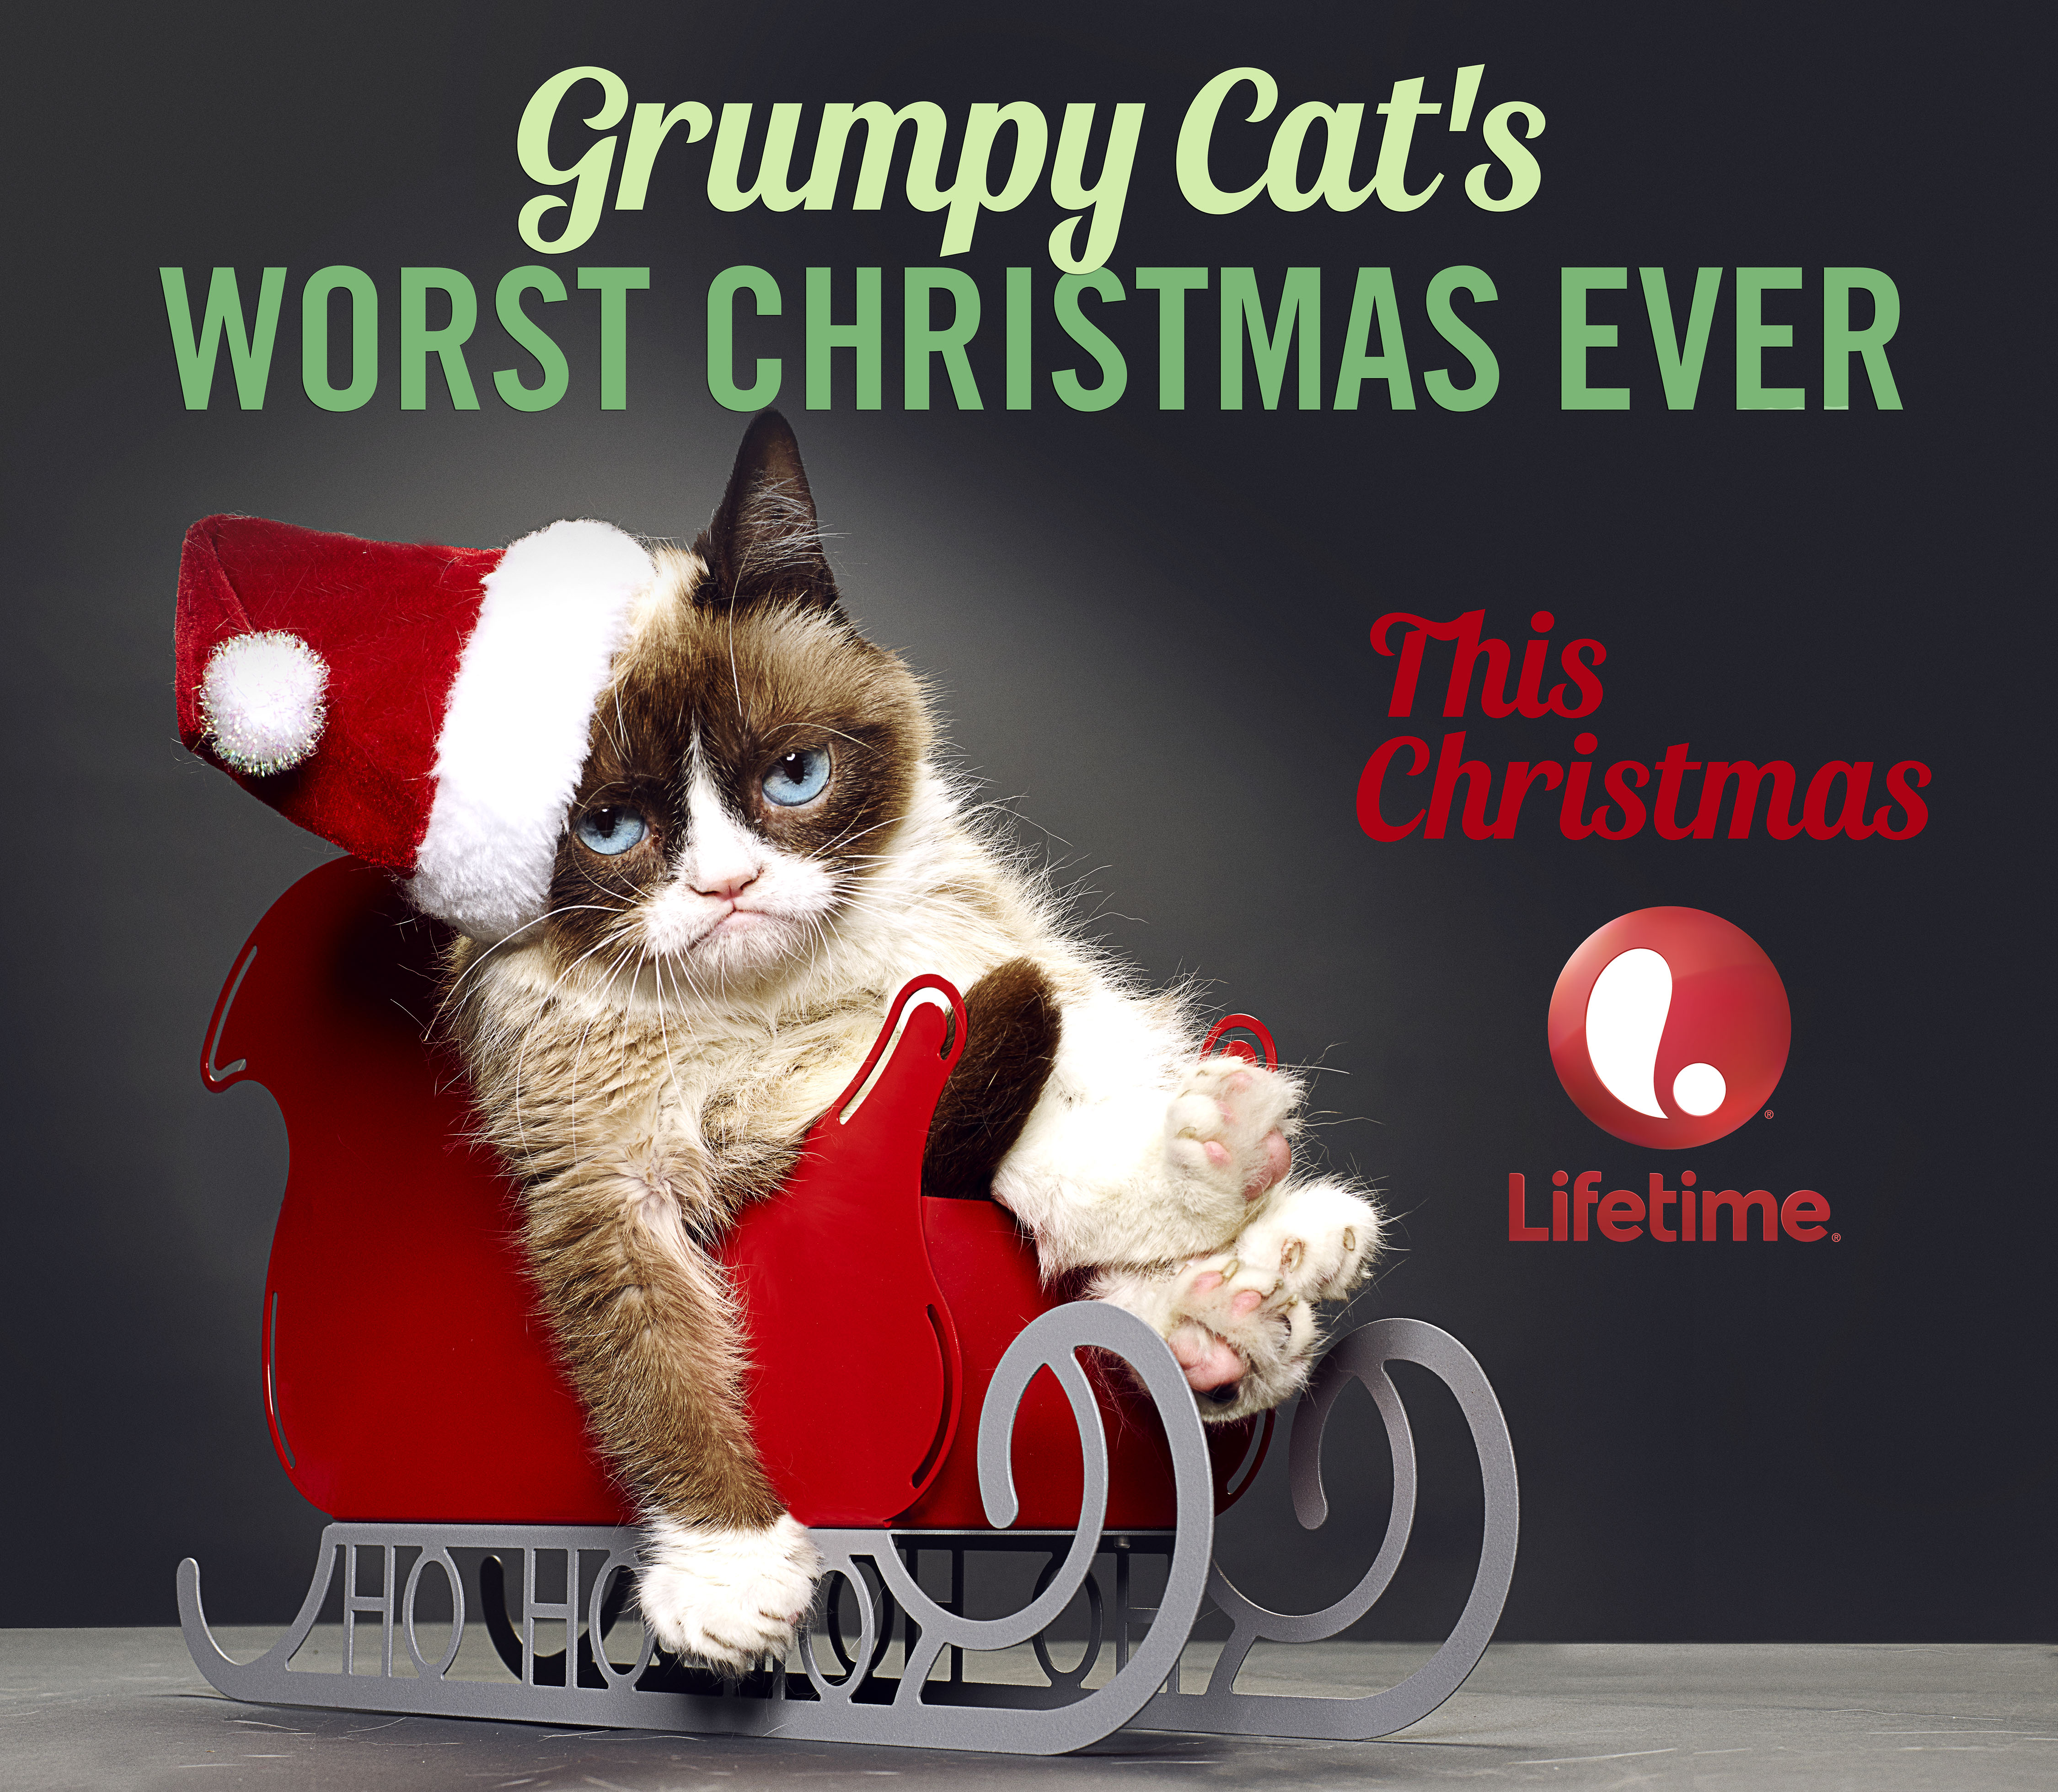 http://www.omgblog.com/media/2014/11/Grumpy-Cat-TV-Movie_Hunl.jpg